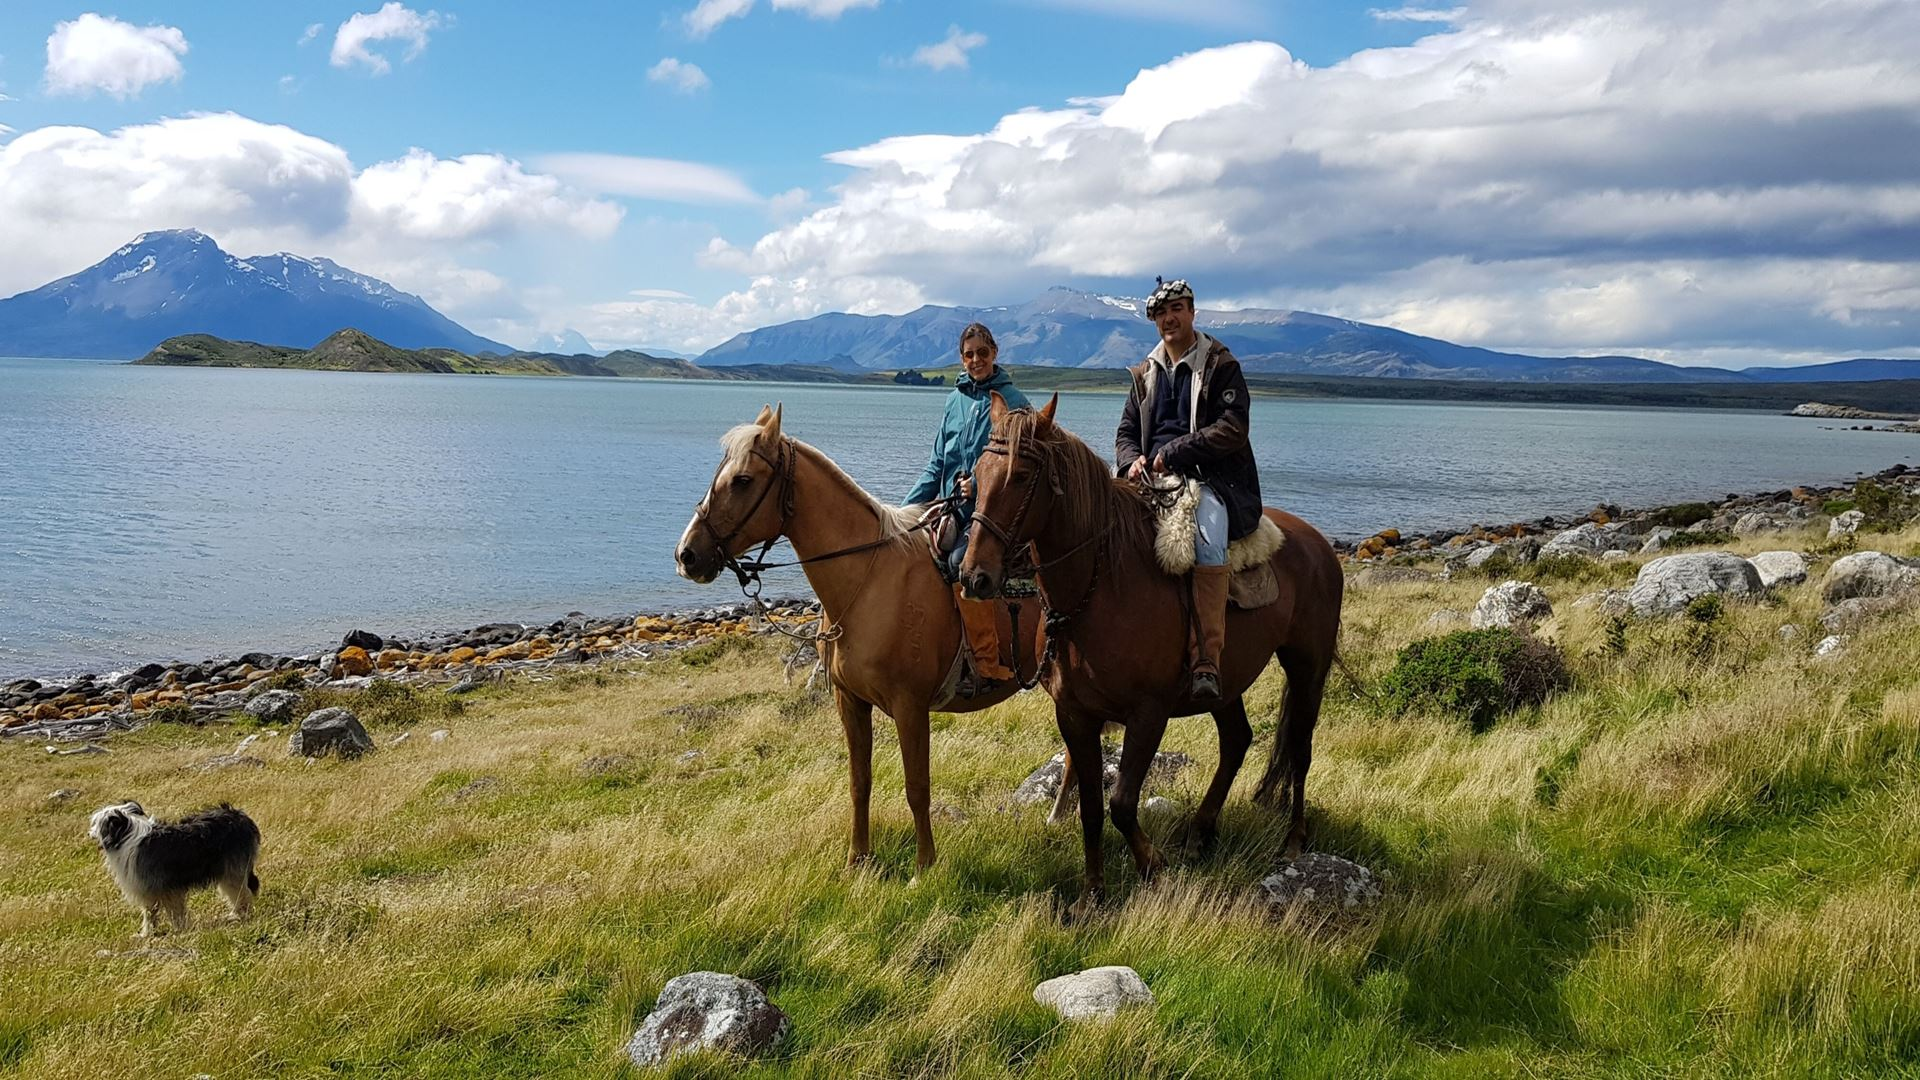 FULL DAY IN A PATAGONIAN RANCH